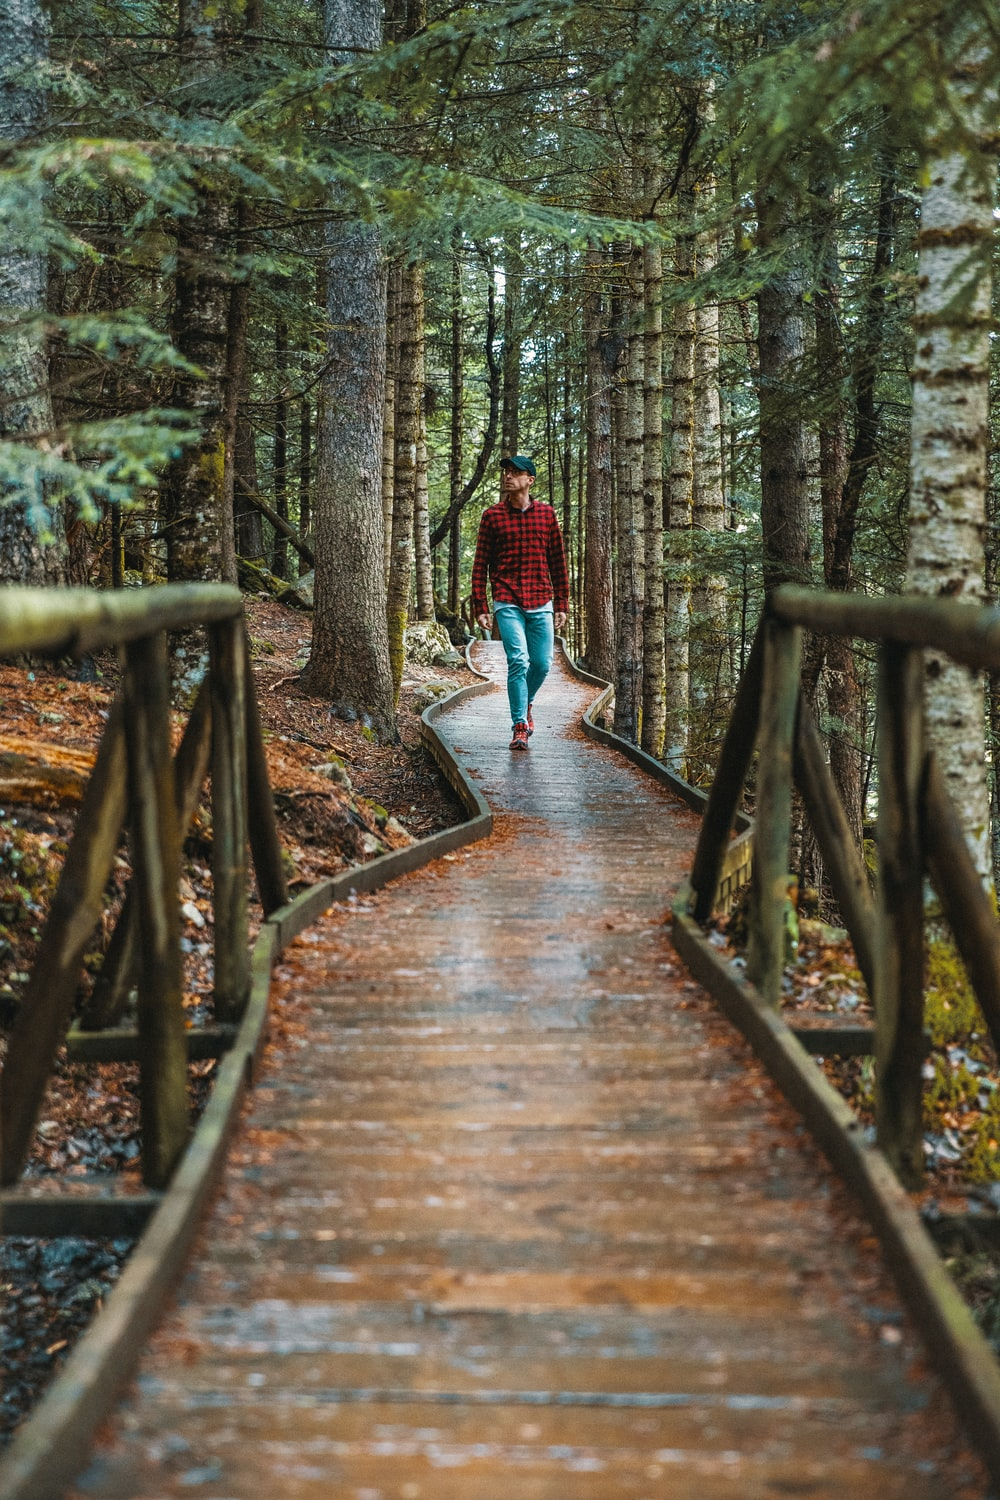 person in red long-sleeved shirt walking at pathway in the forest